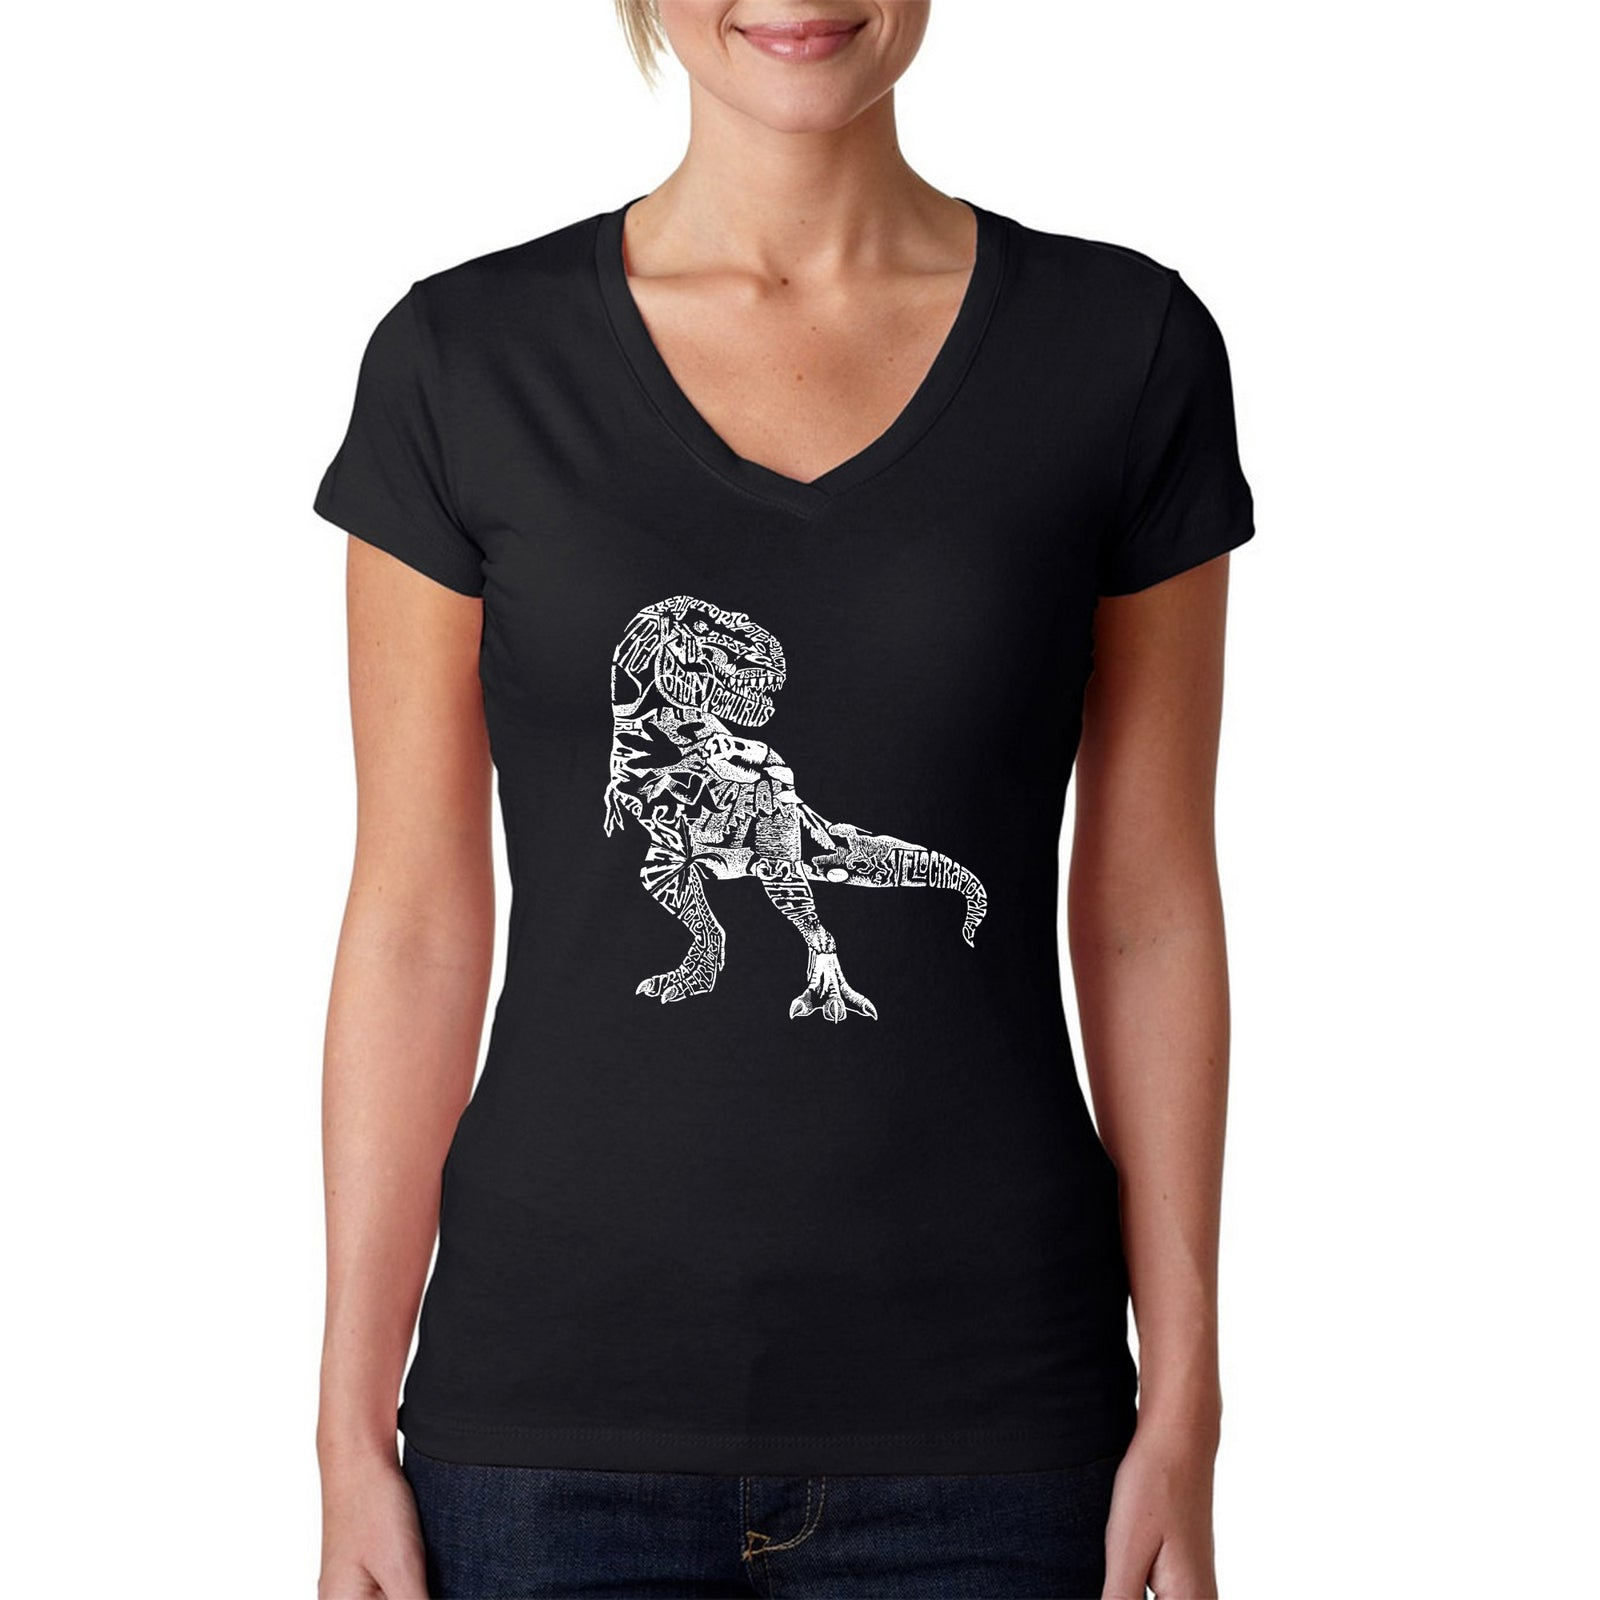 Women's Word Art V-Neck T-Shirt - Dino Pics